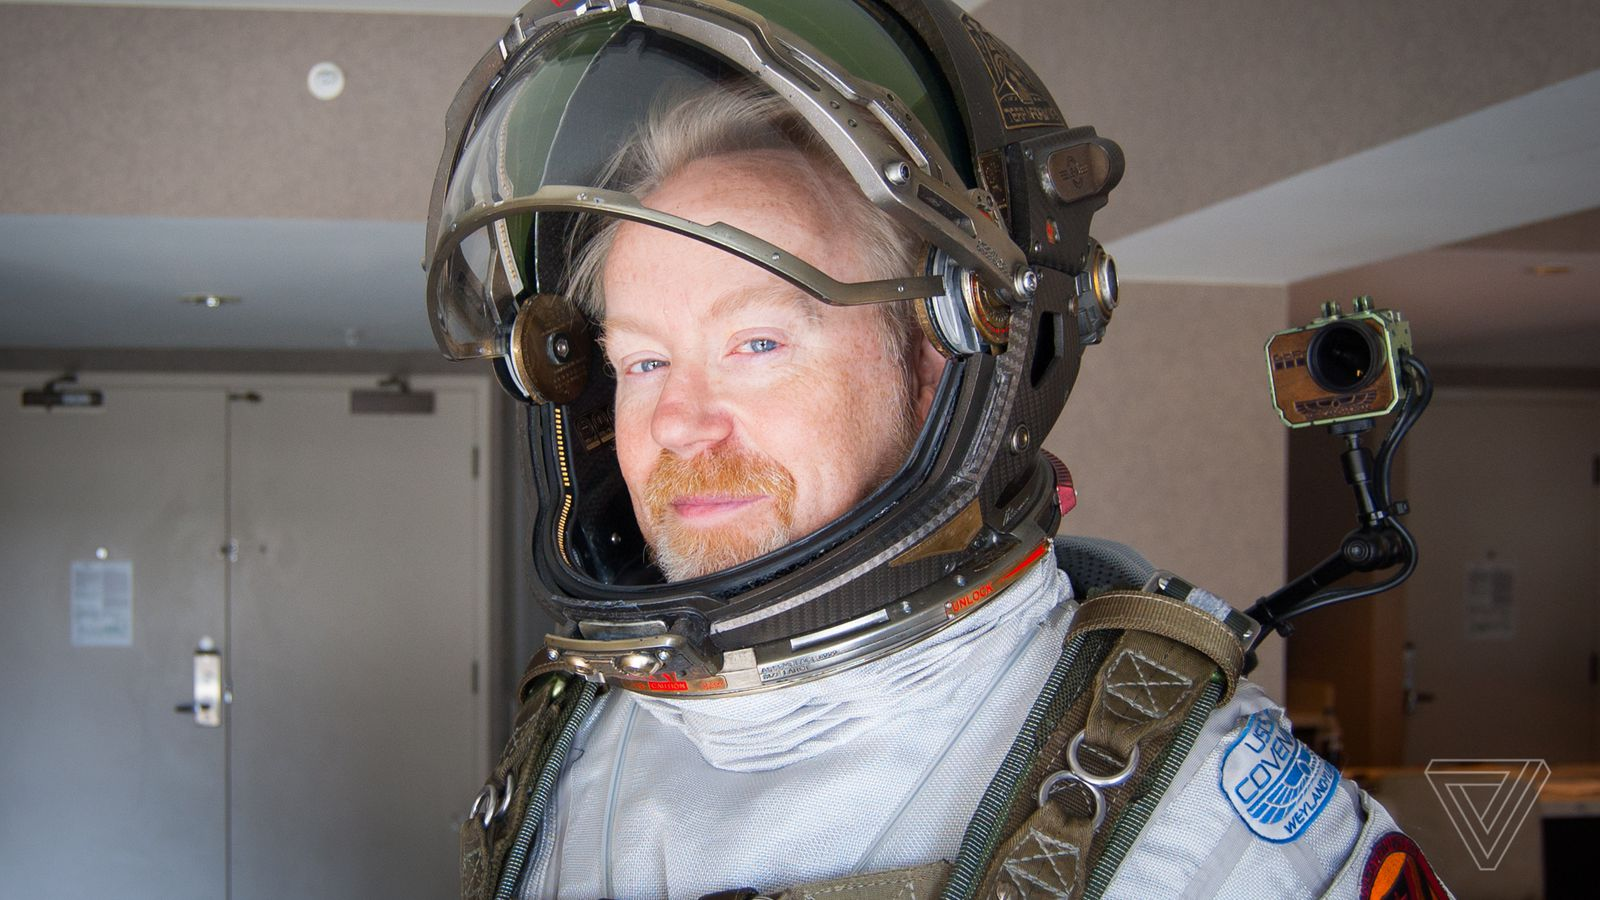 Adam Savage explains why space suits are his happy place